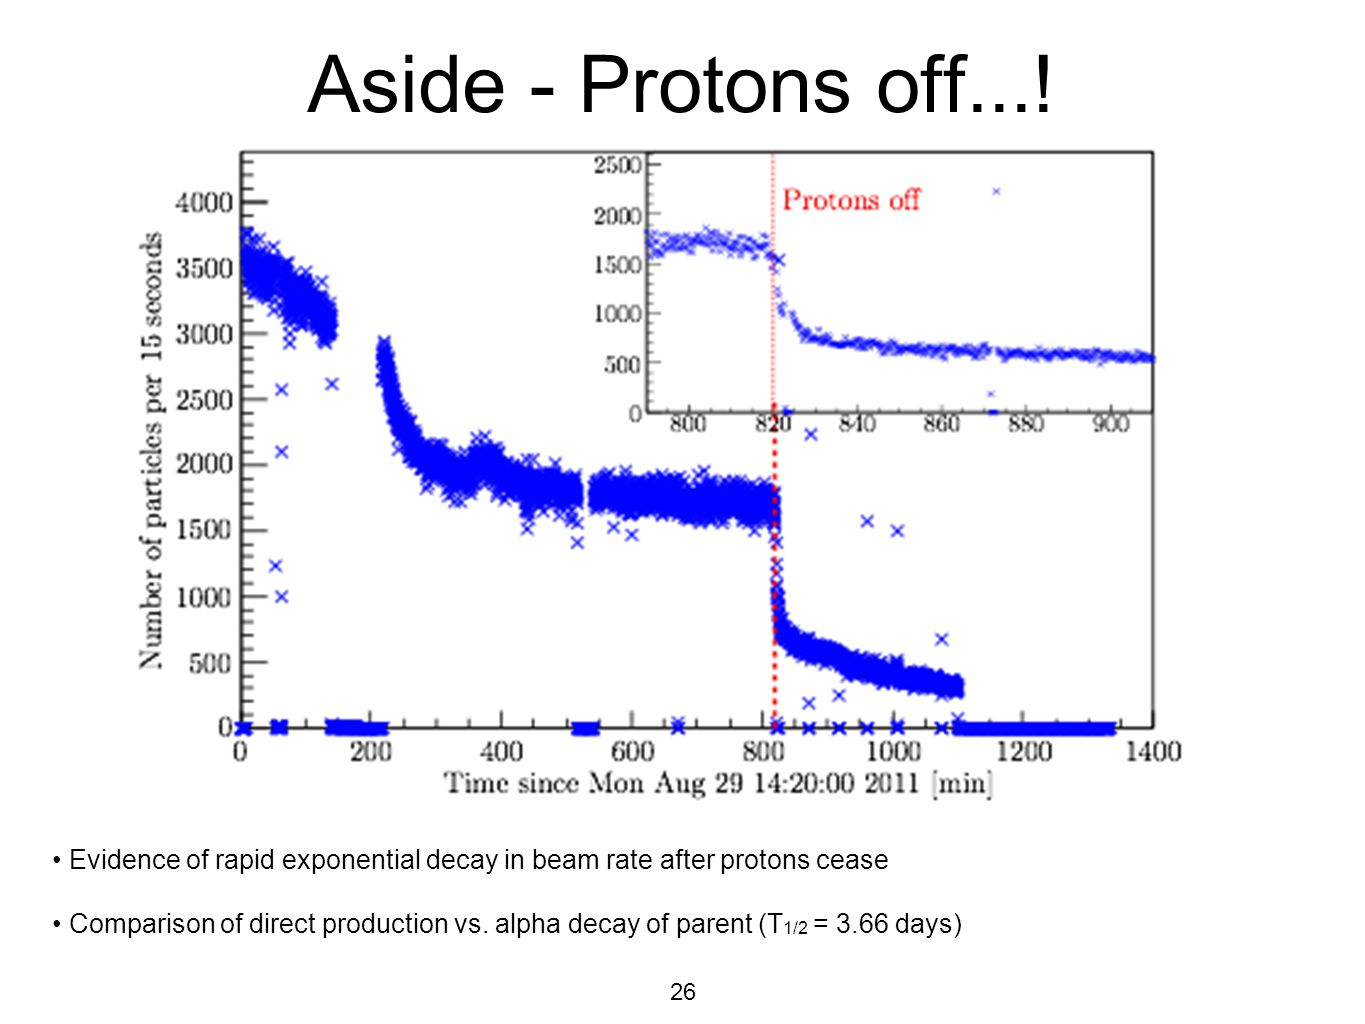 Aside - Protons off...! • Evidence of rapid exponential decay in beam rate after protons cease.